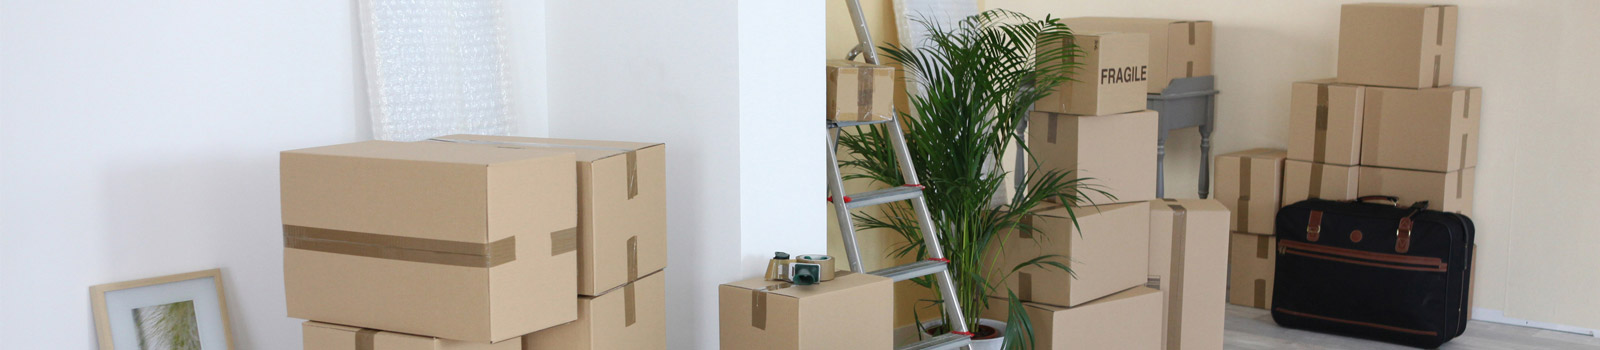 Home Packing Services